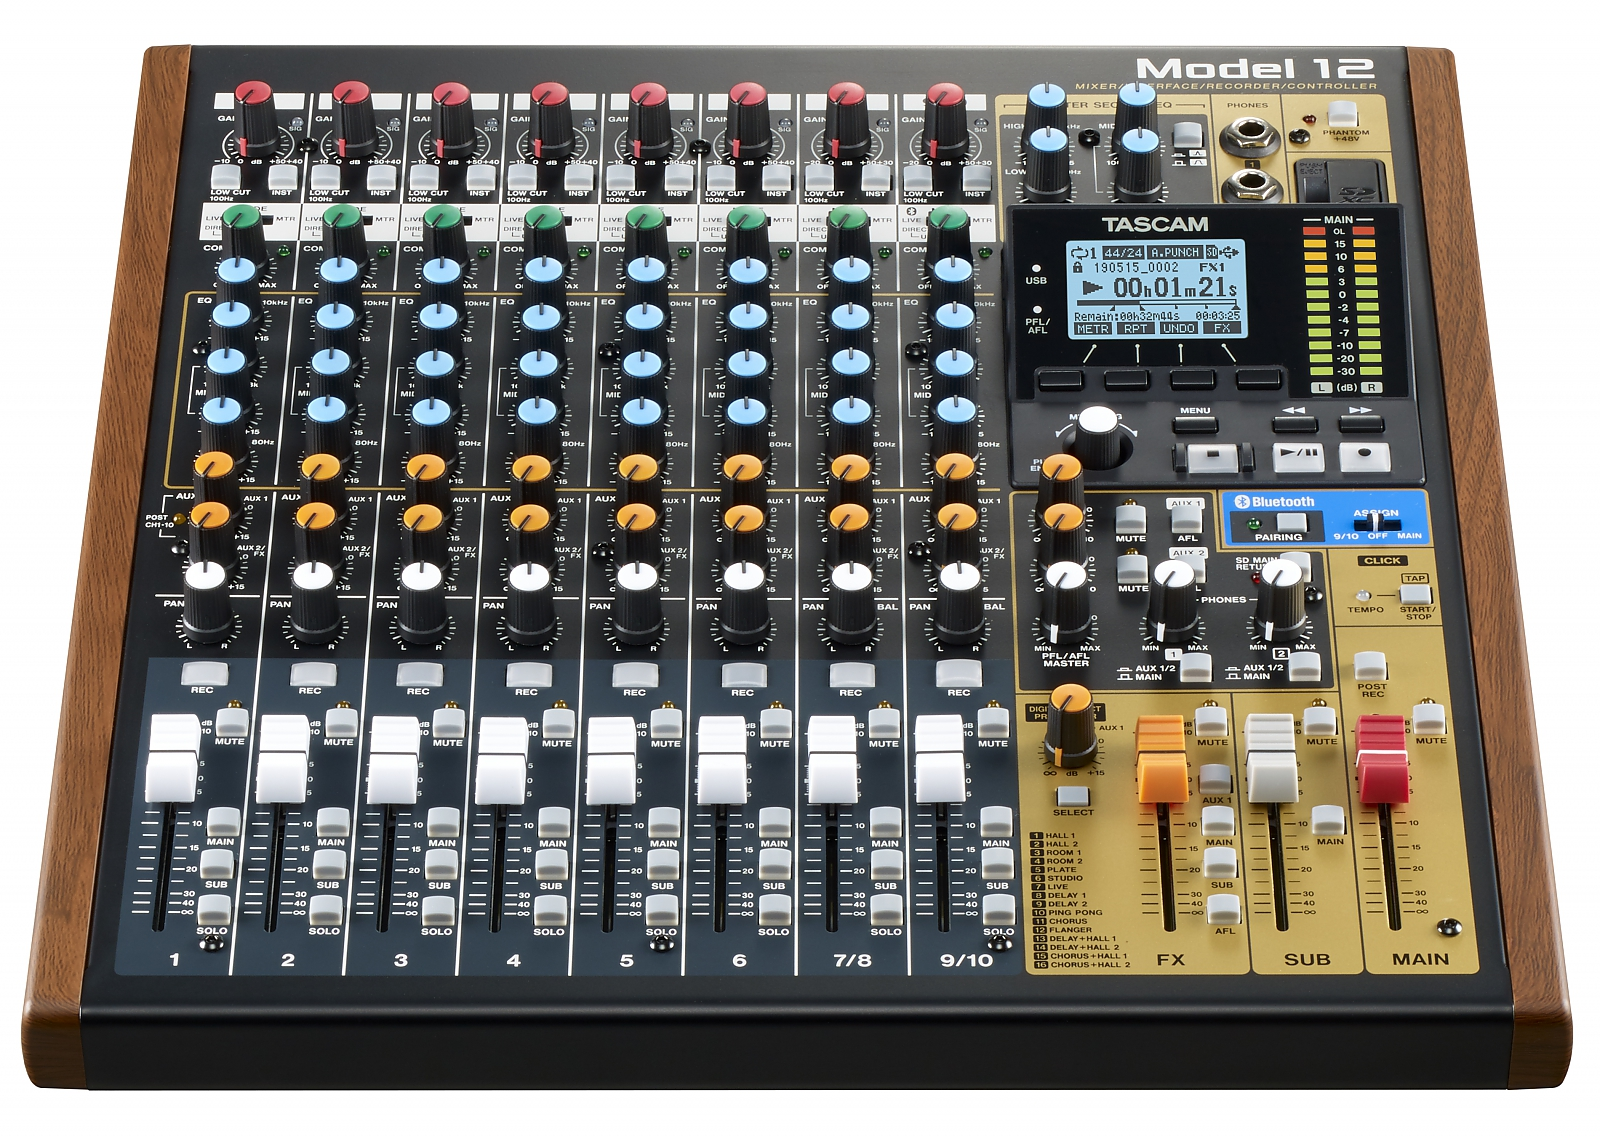 Tascam Model 12 Mixer / Interface /  Recorder / Controller